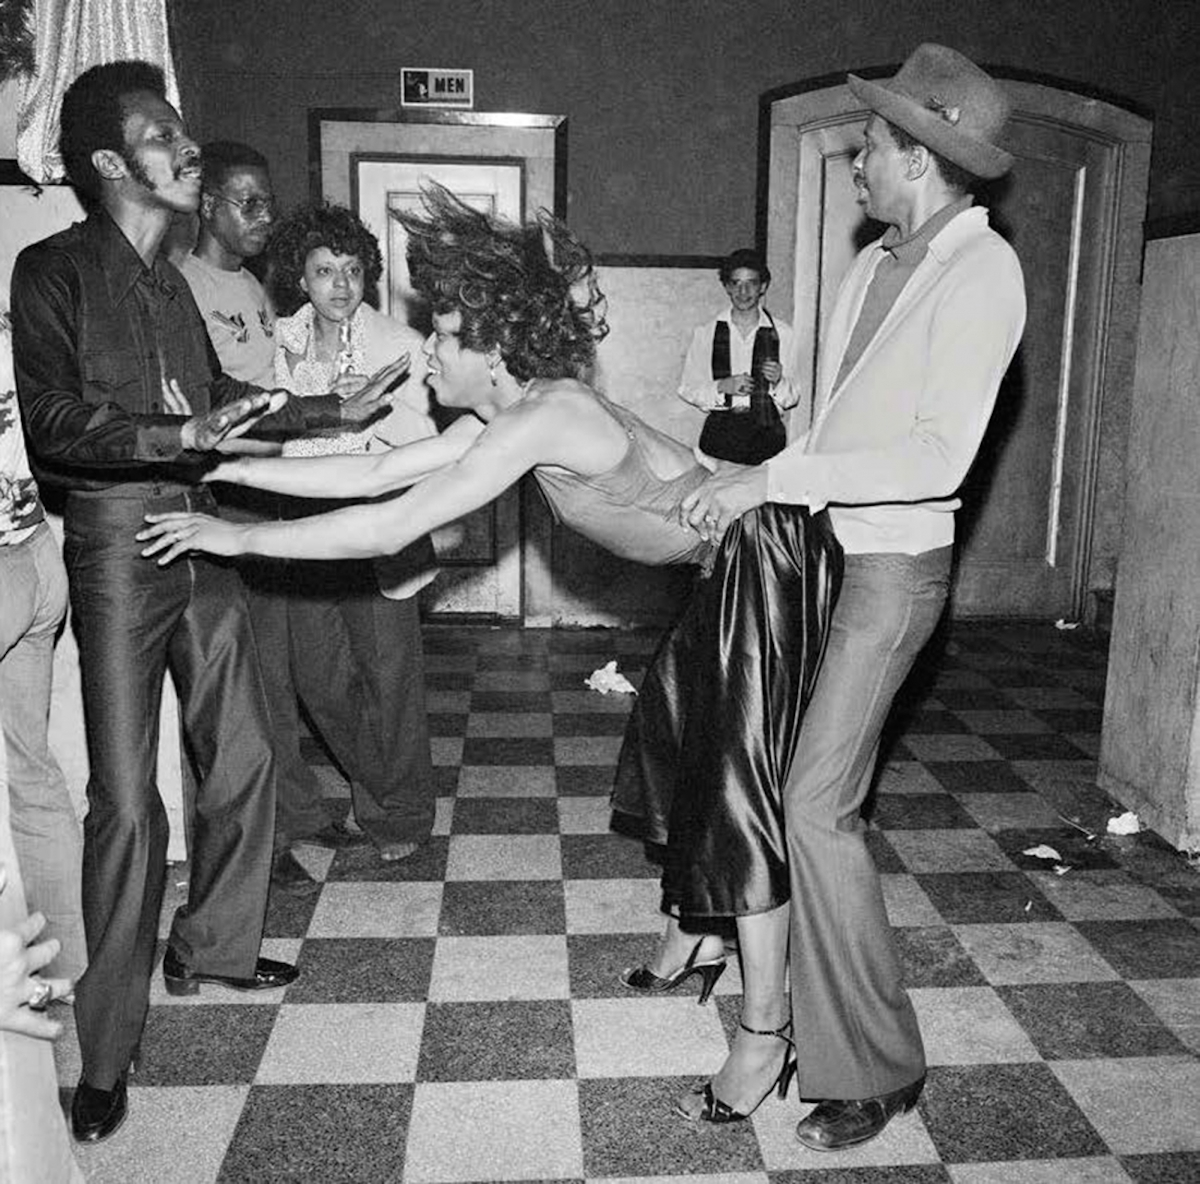 Threesome Dance, GG's Barnum Room NY, December 1978